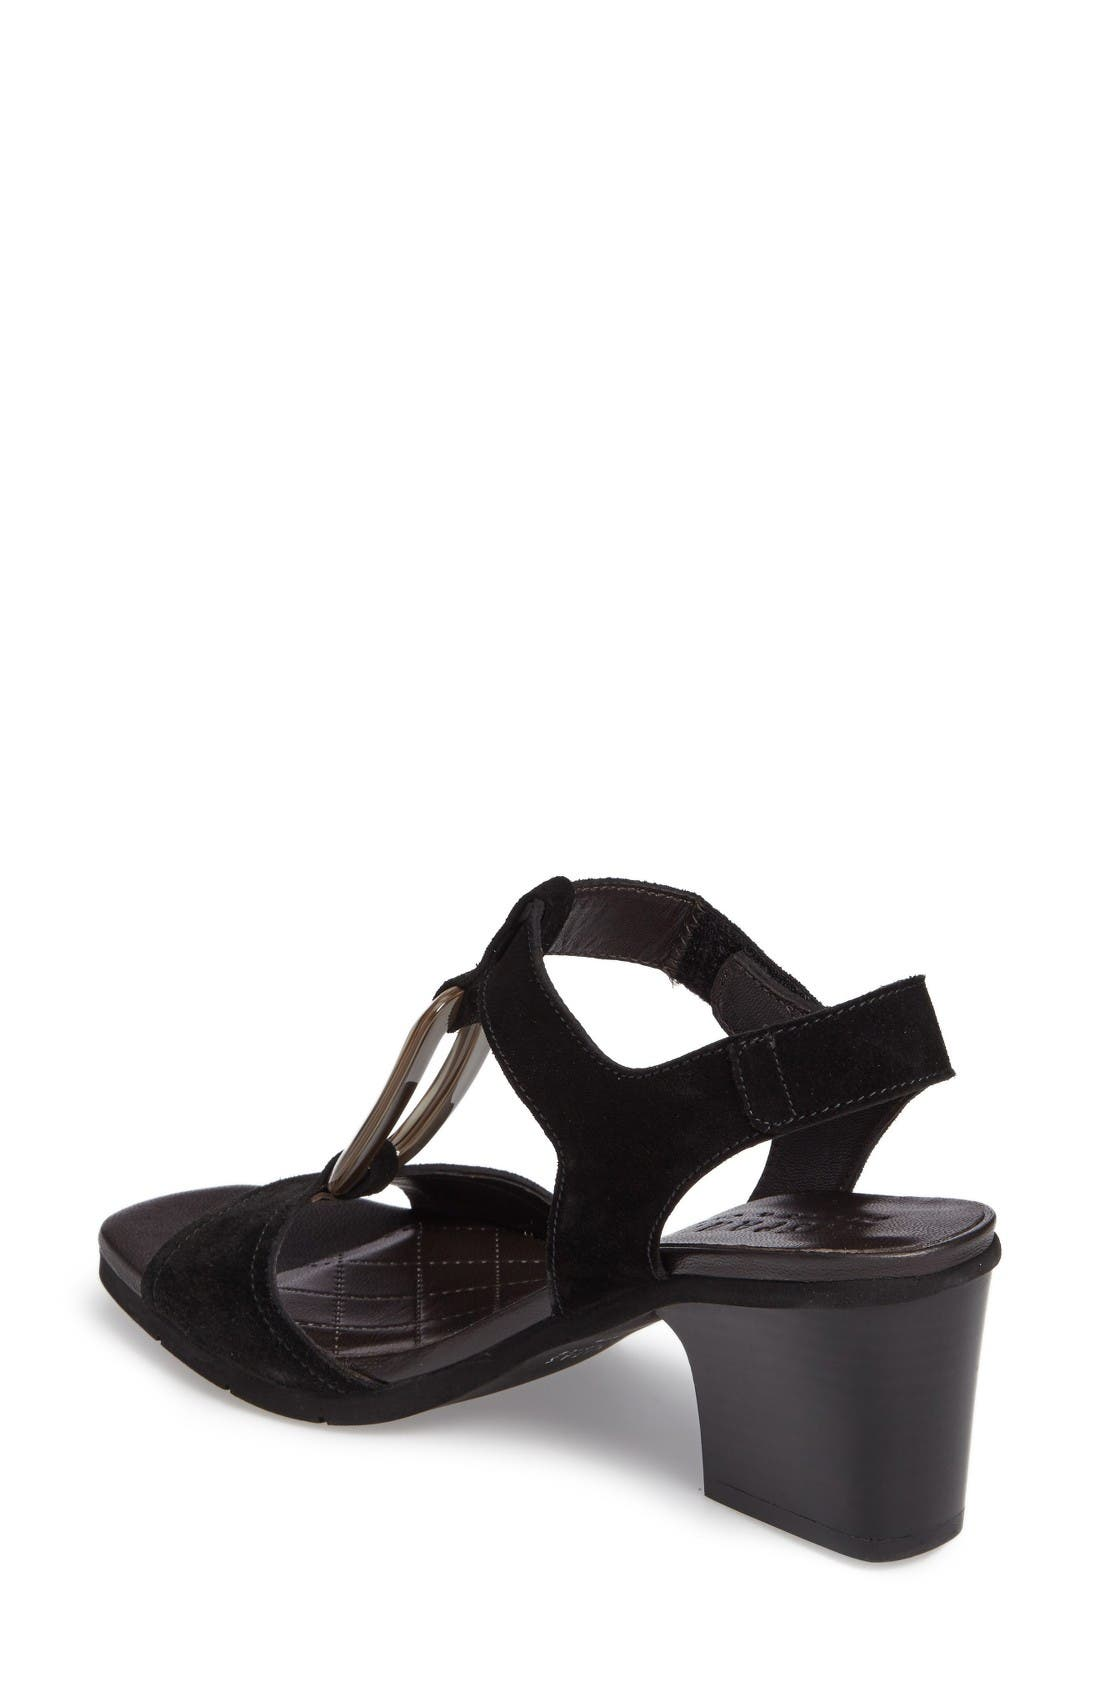 Alternate Image 2  - Hispanitas Ursula Ringed T-Strap Sandal (Women)